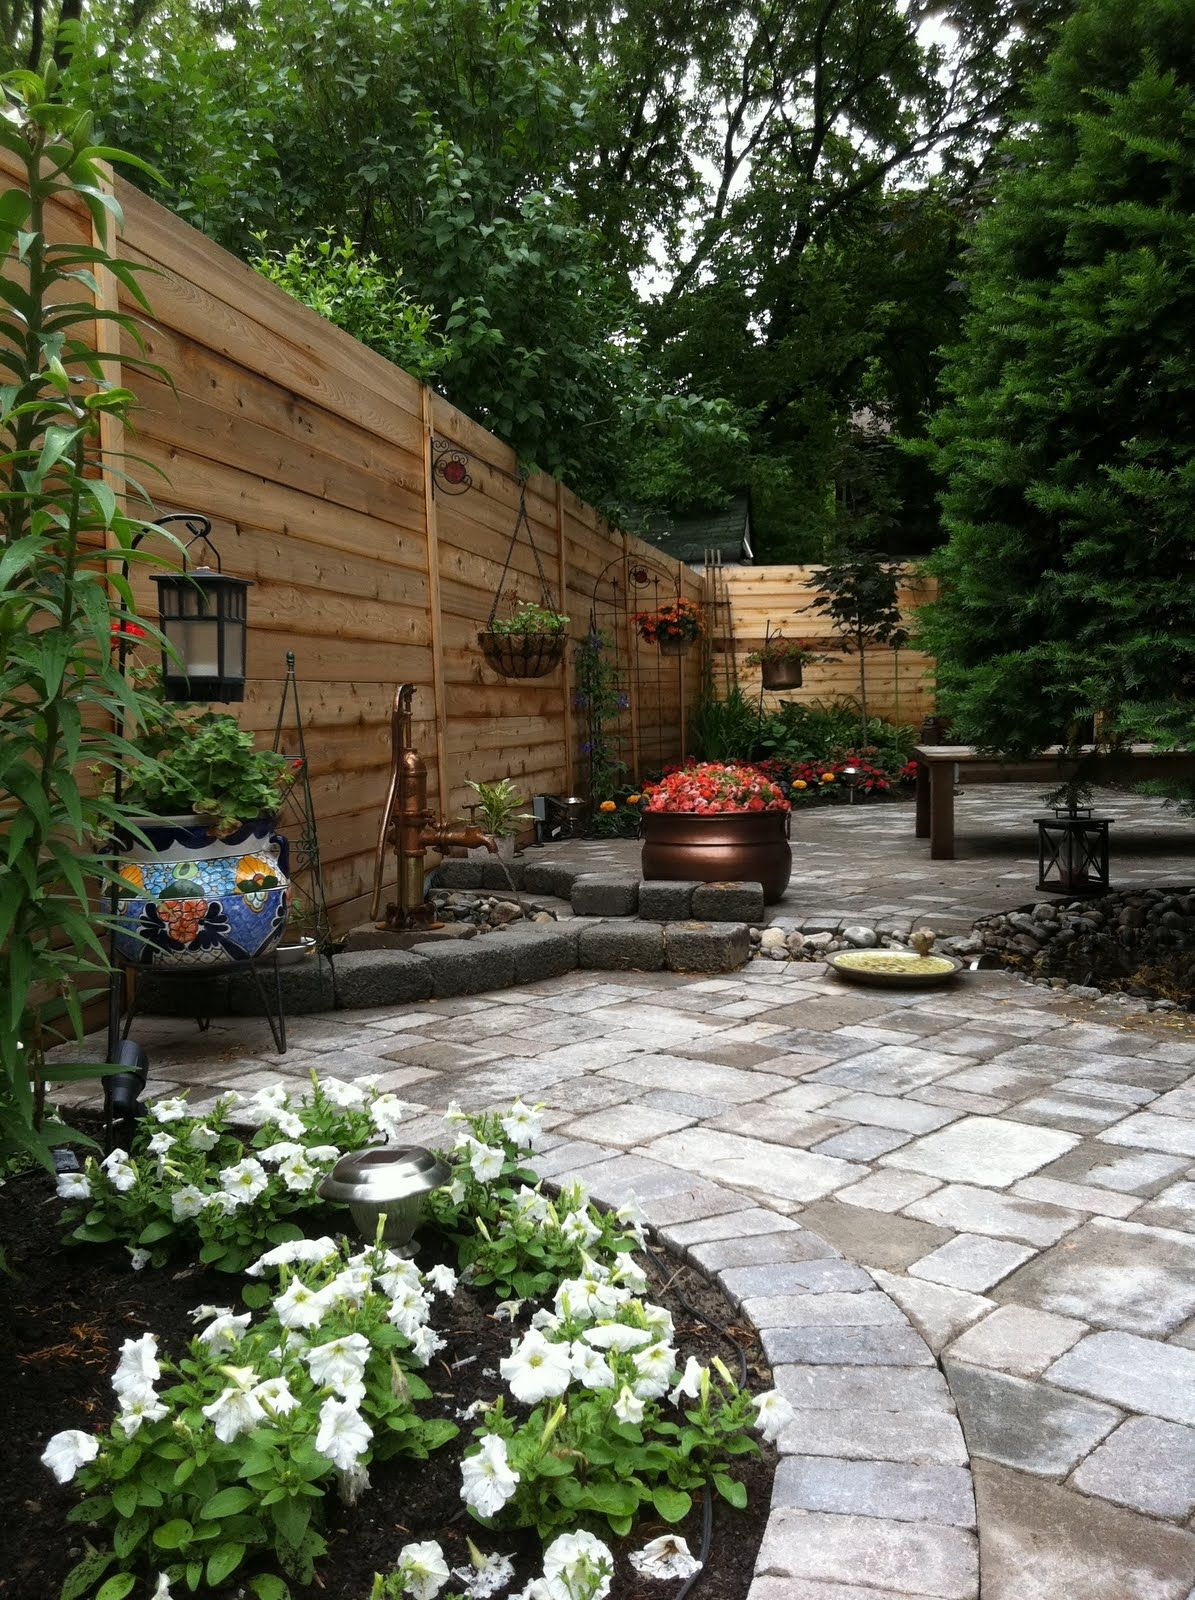 30 wonderful backyard landscaping ideas - Backyard Landscaping Design Ideas